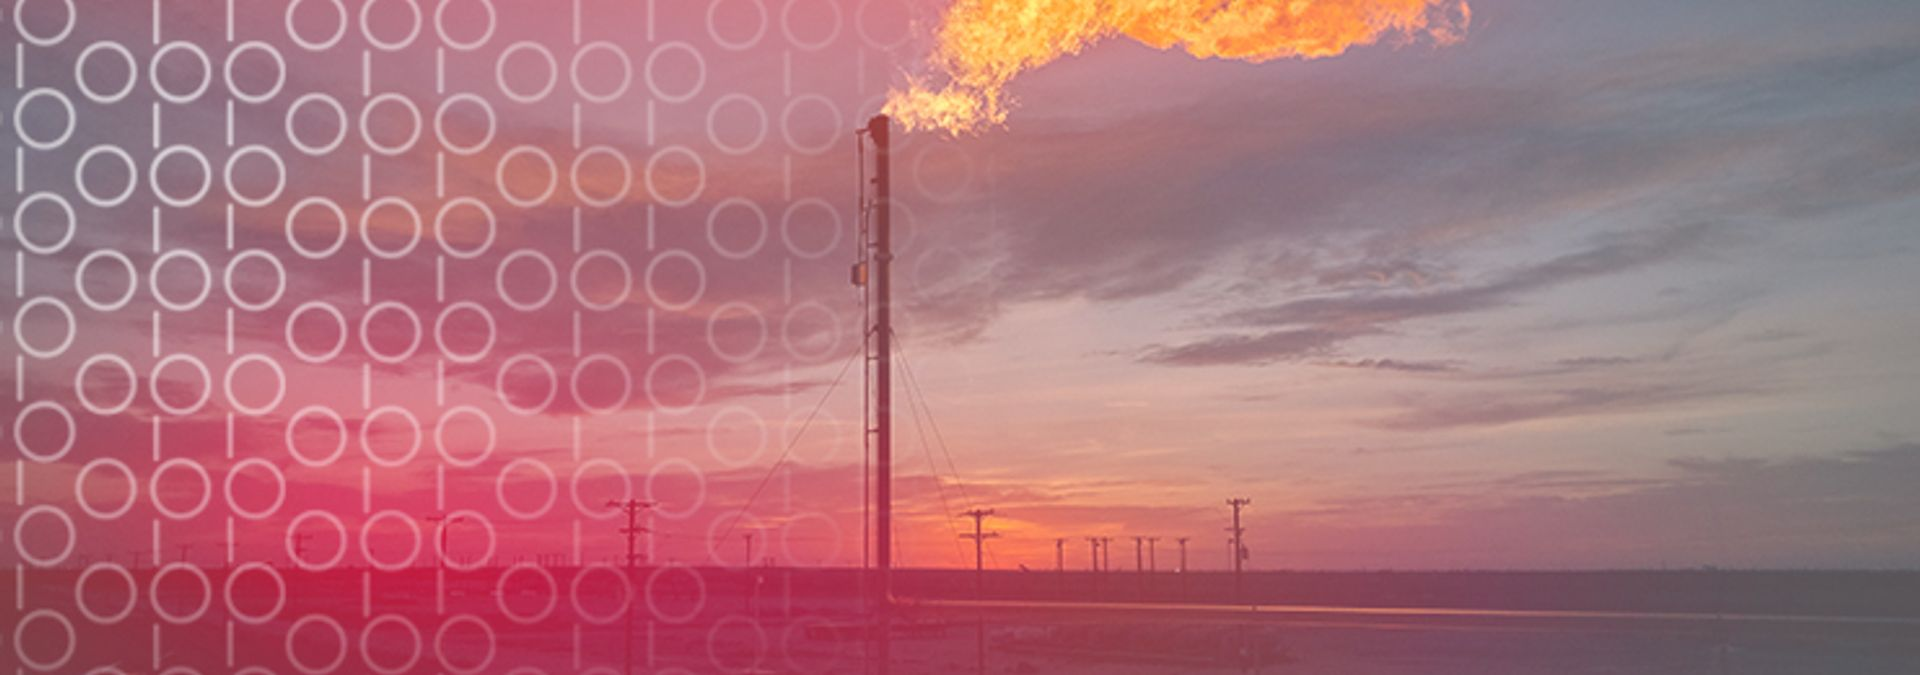 Flaring off natural gas in the Eagle Ford Shale region has been linked by researchers to an increase in preterm births in South Texas.